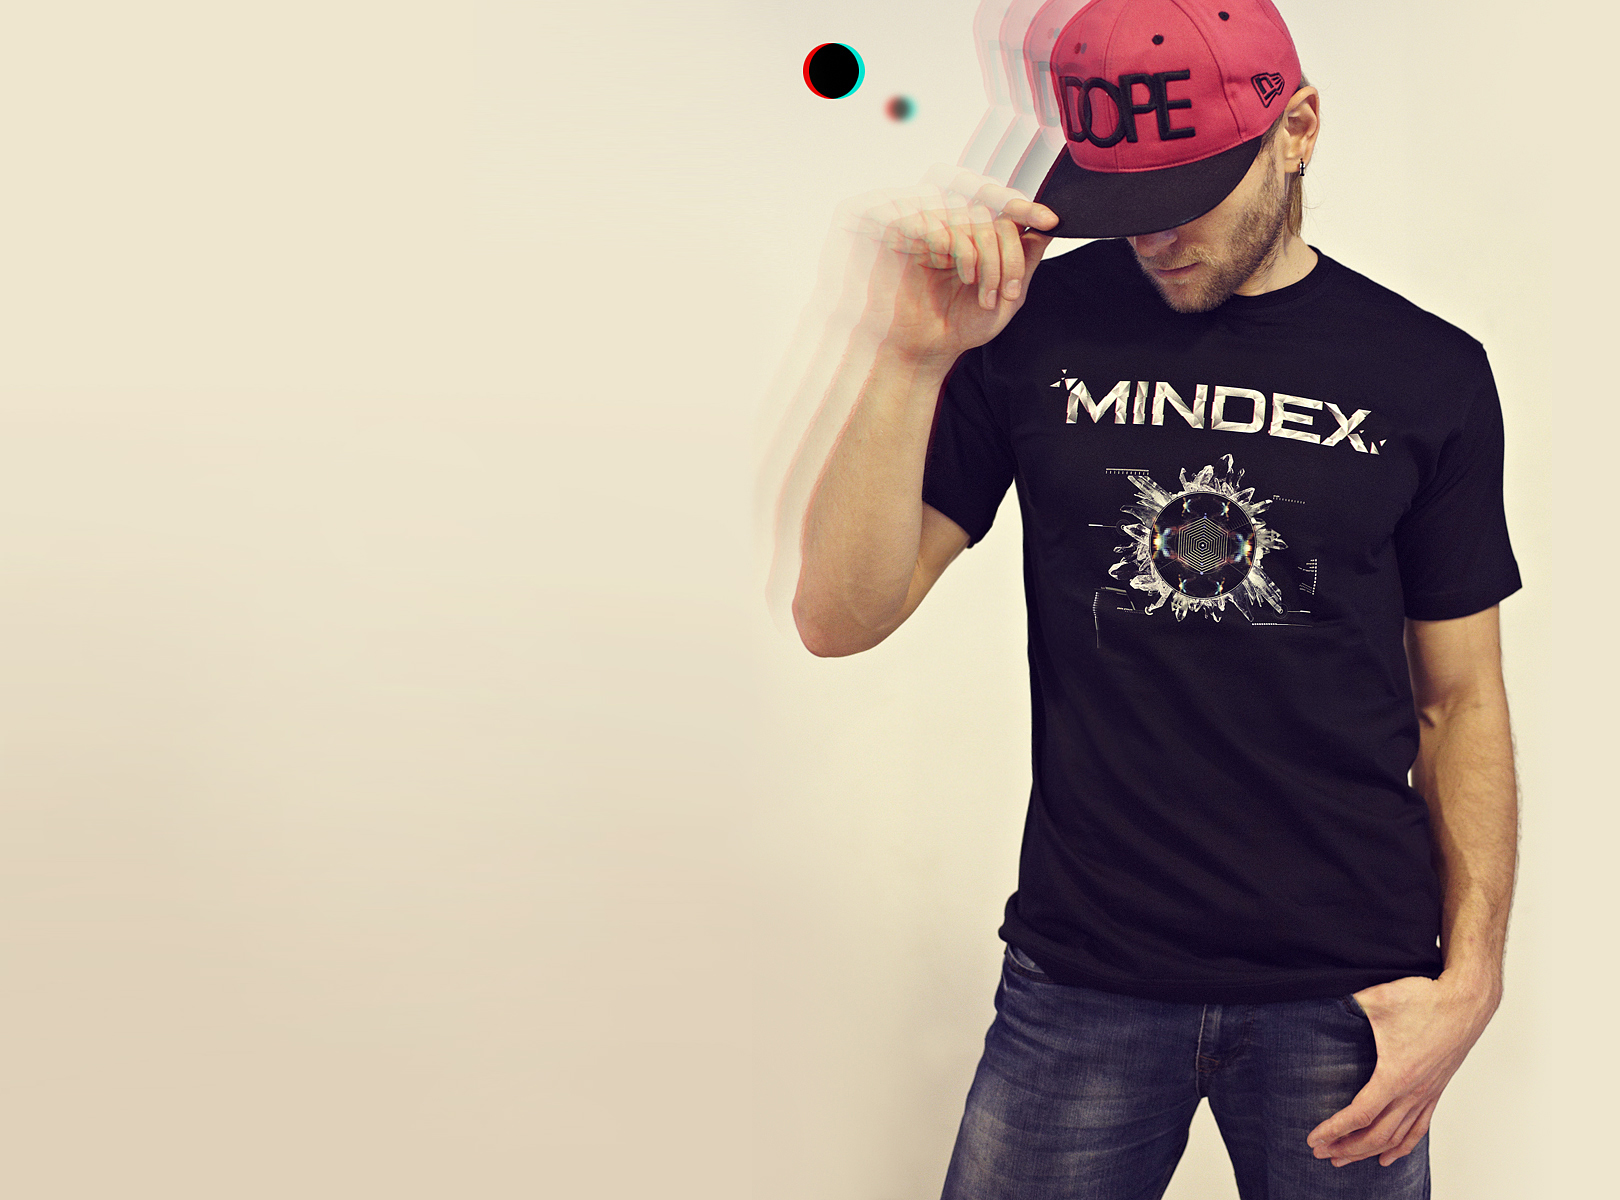 mindex-design_wide